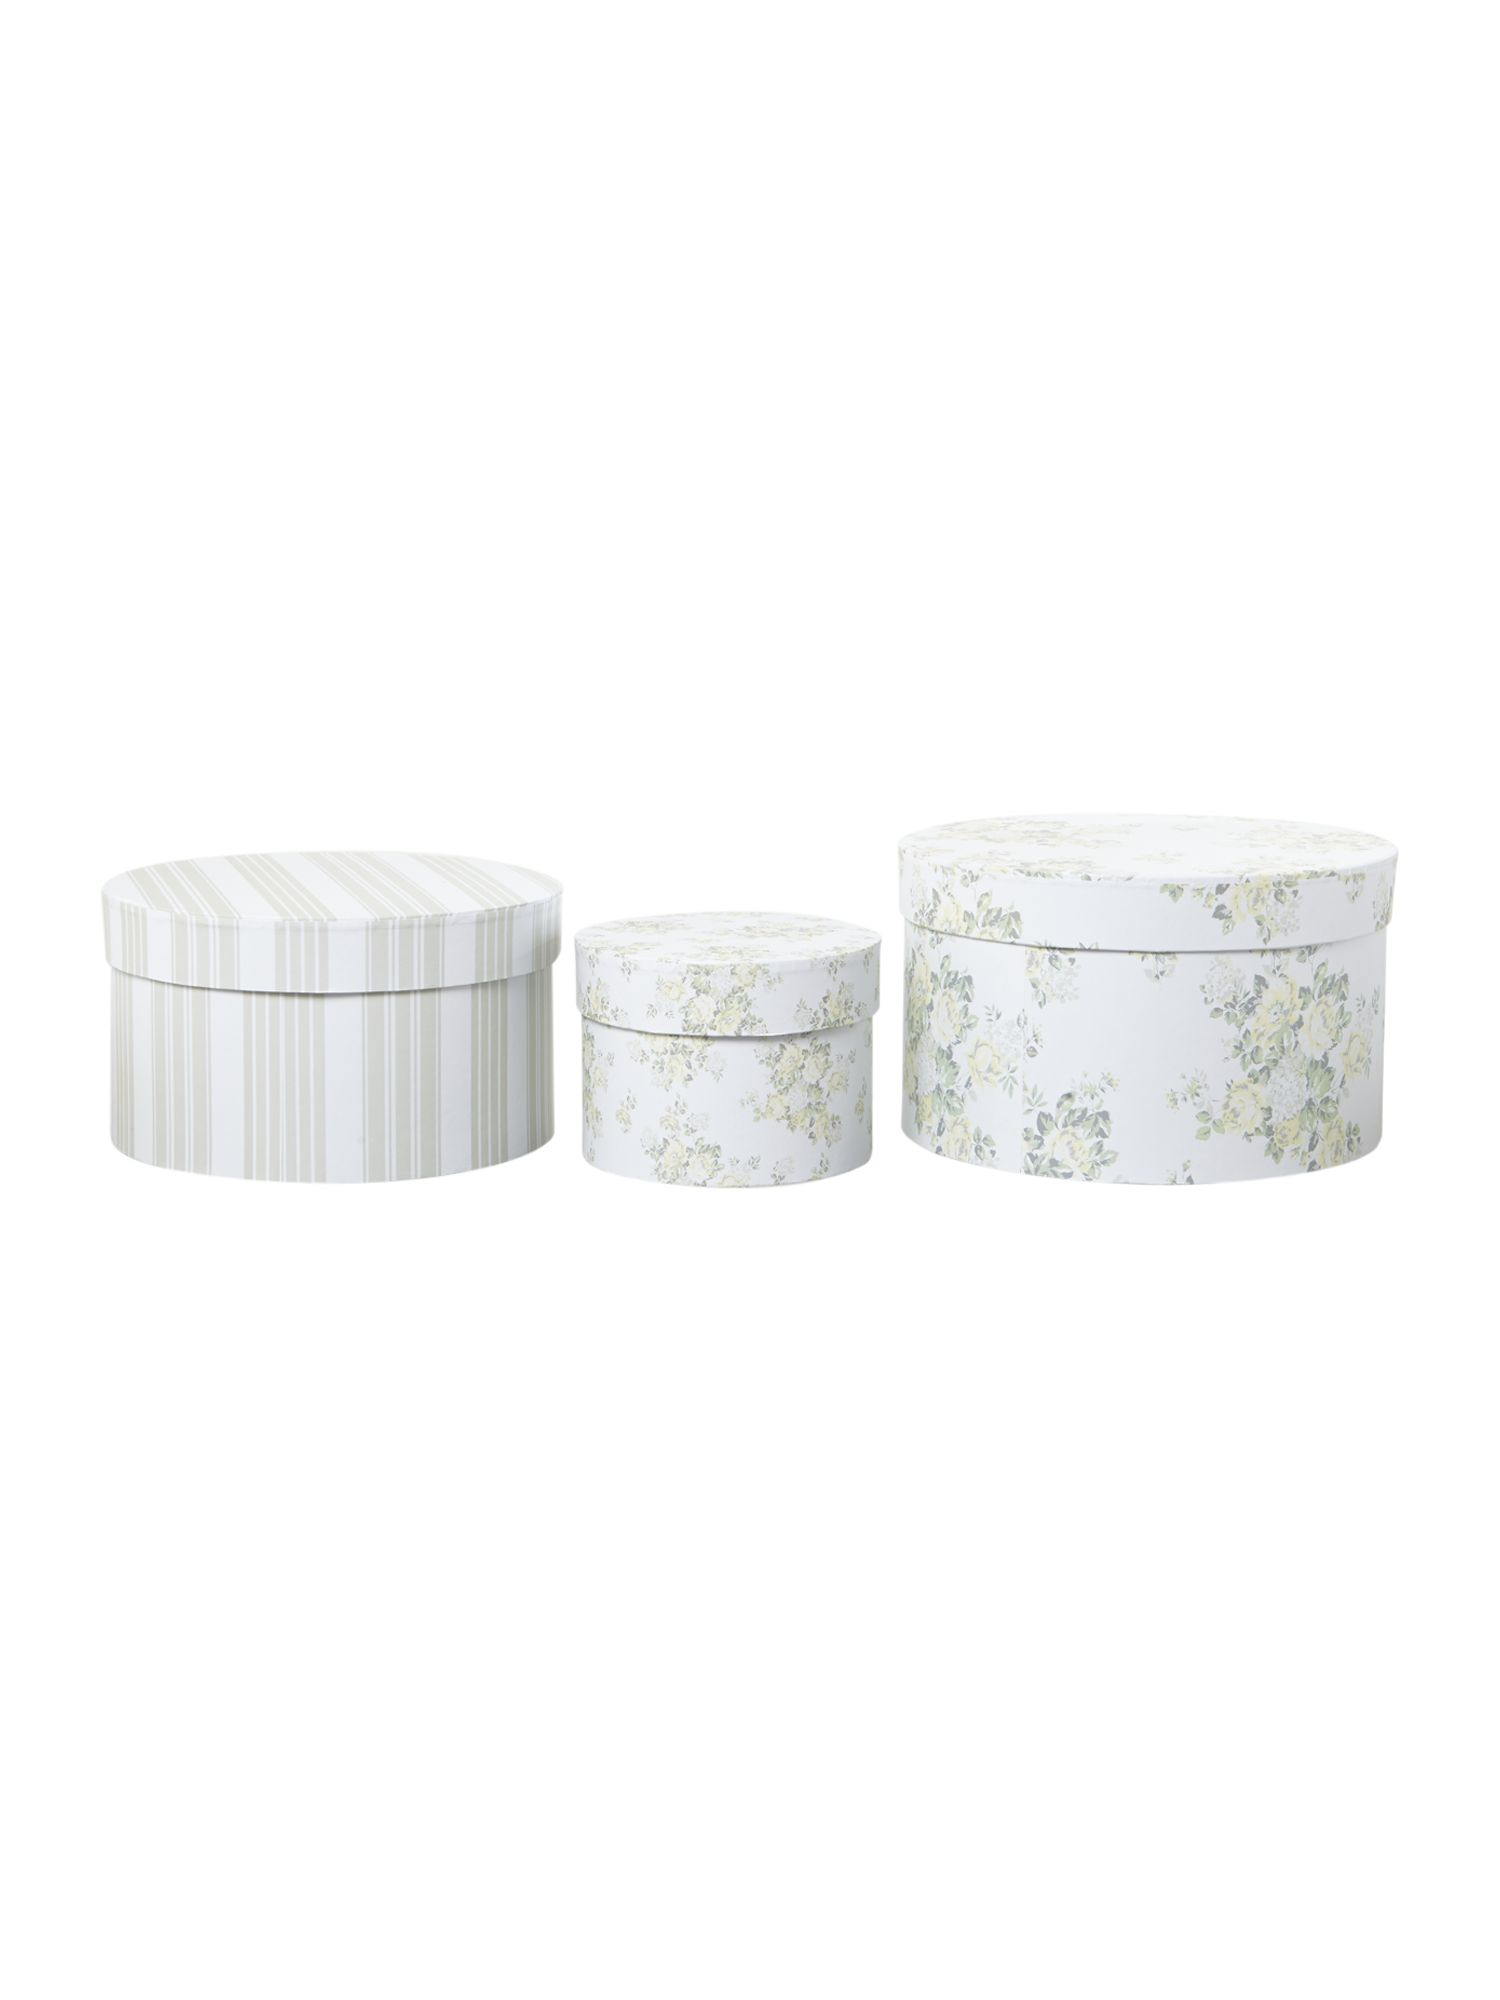 Set of 3 round storage boxes